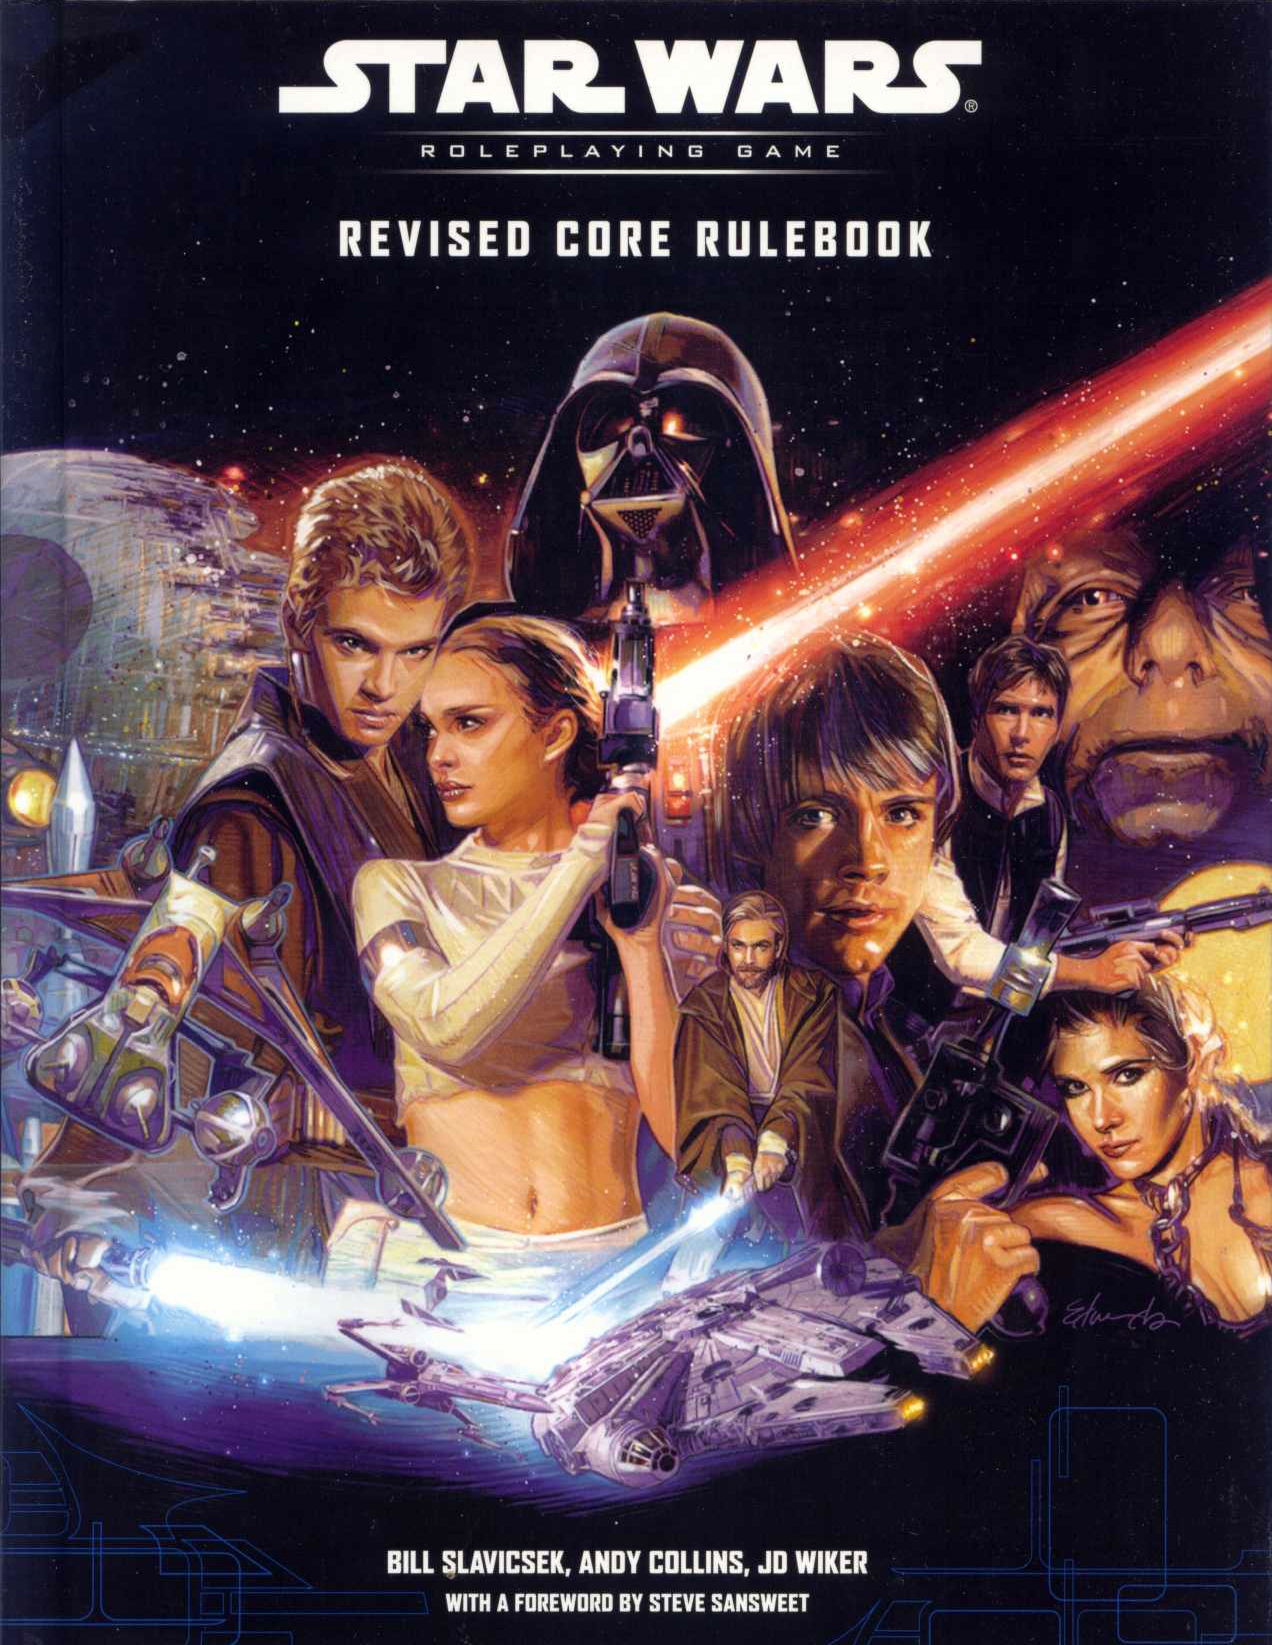 Star Wars Roleplaying Game Revised Core Rulebook | Wookieepedia